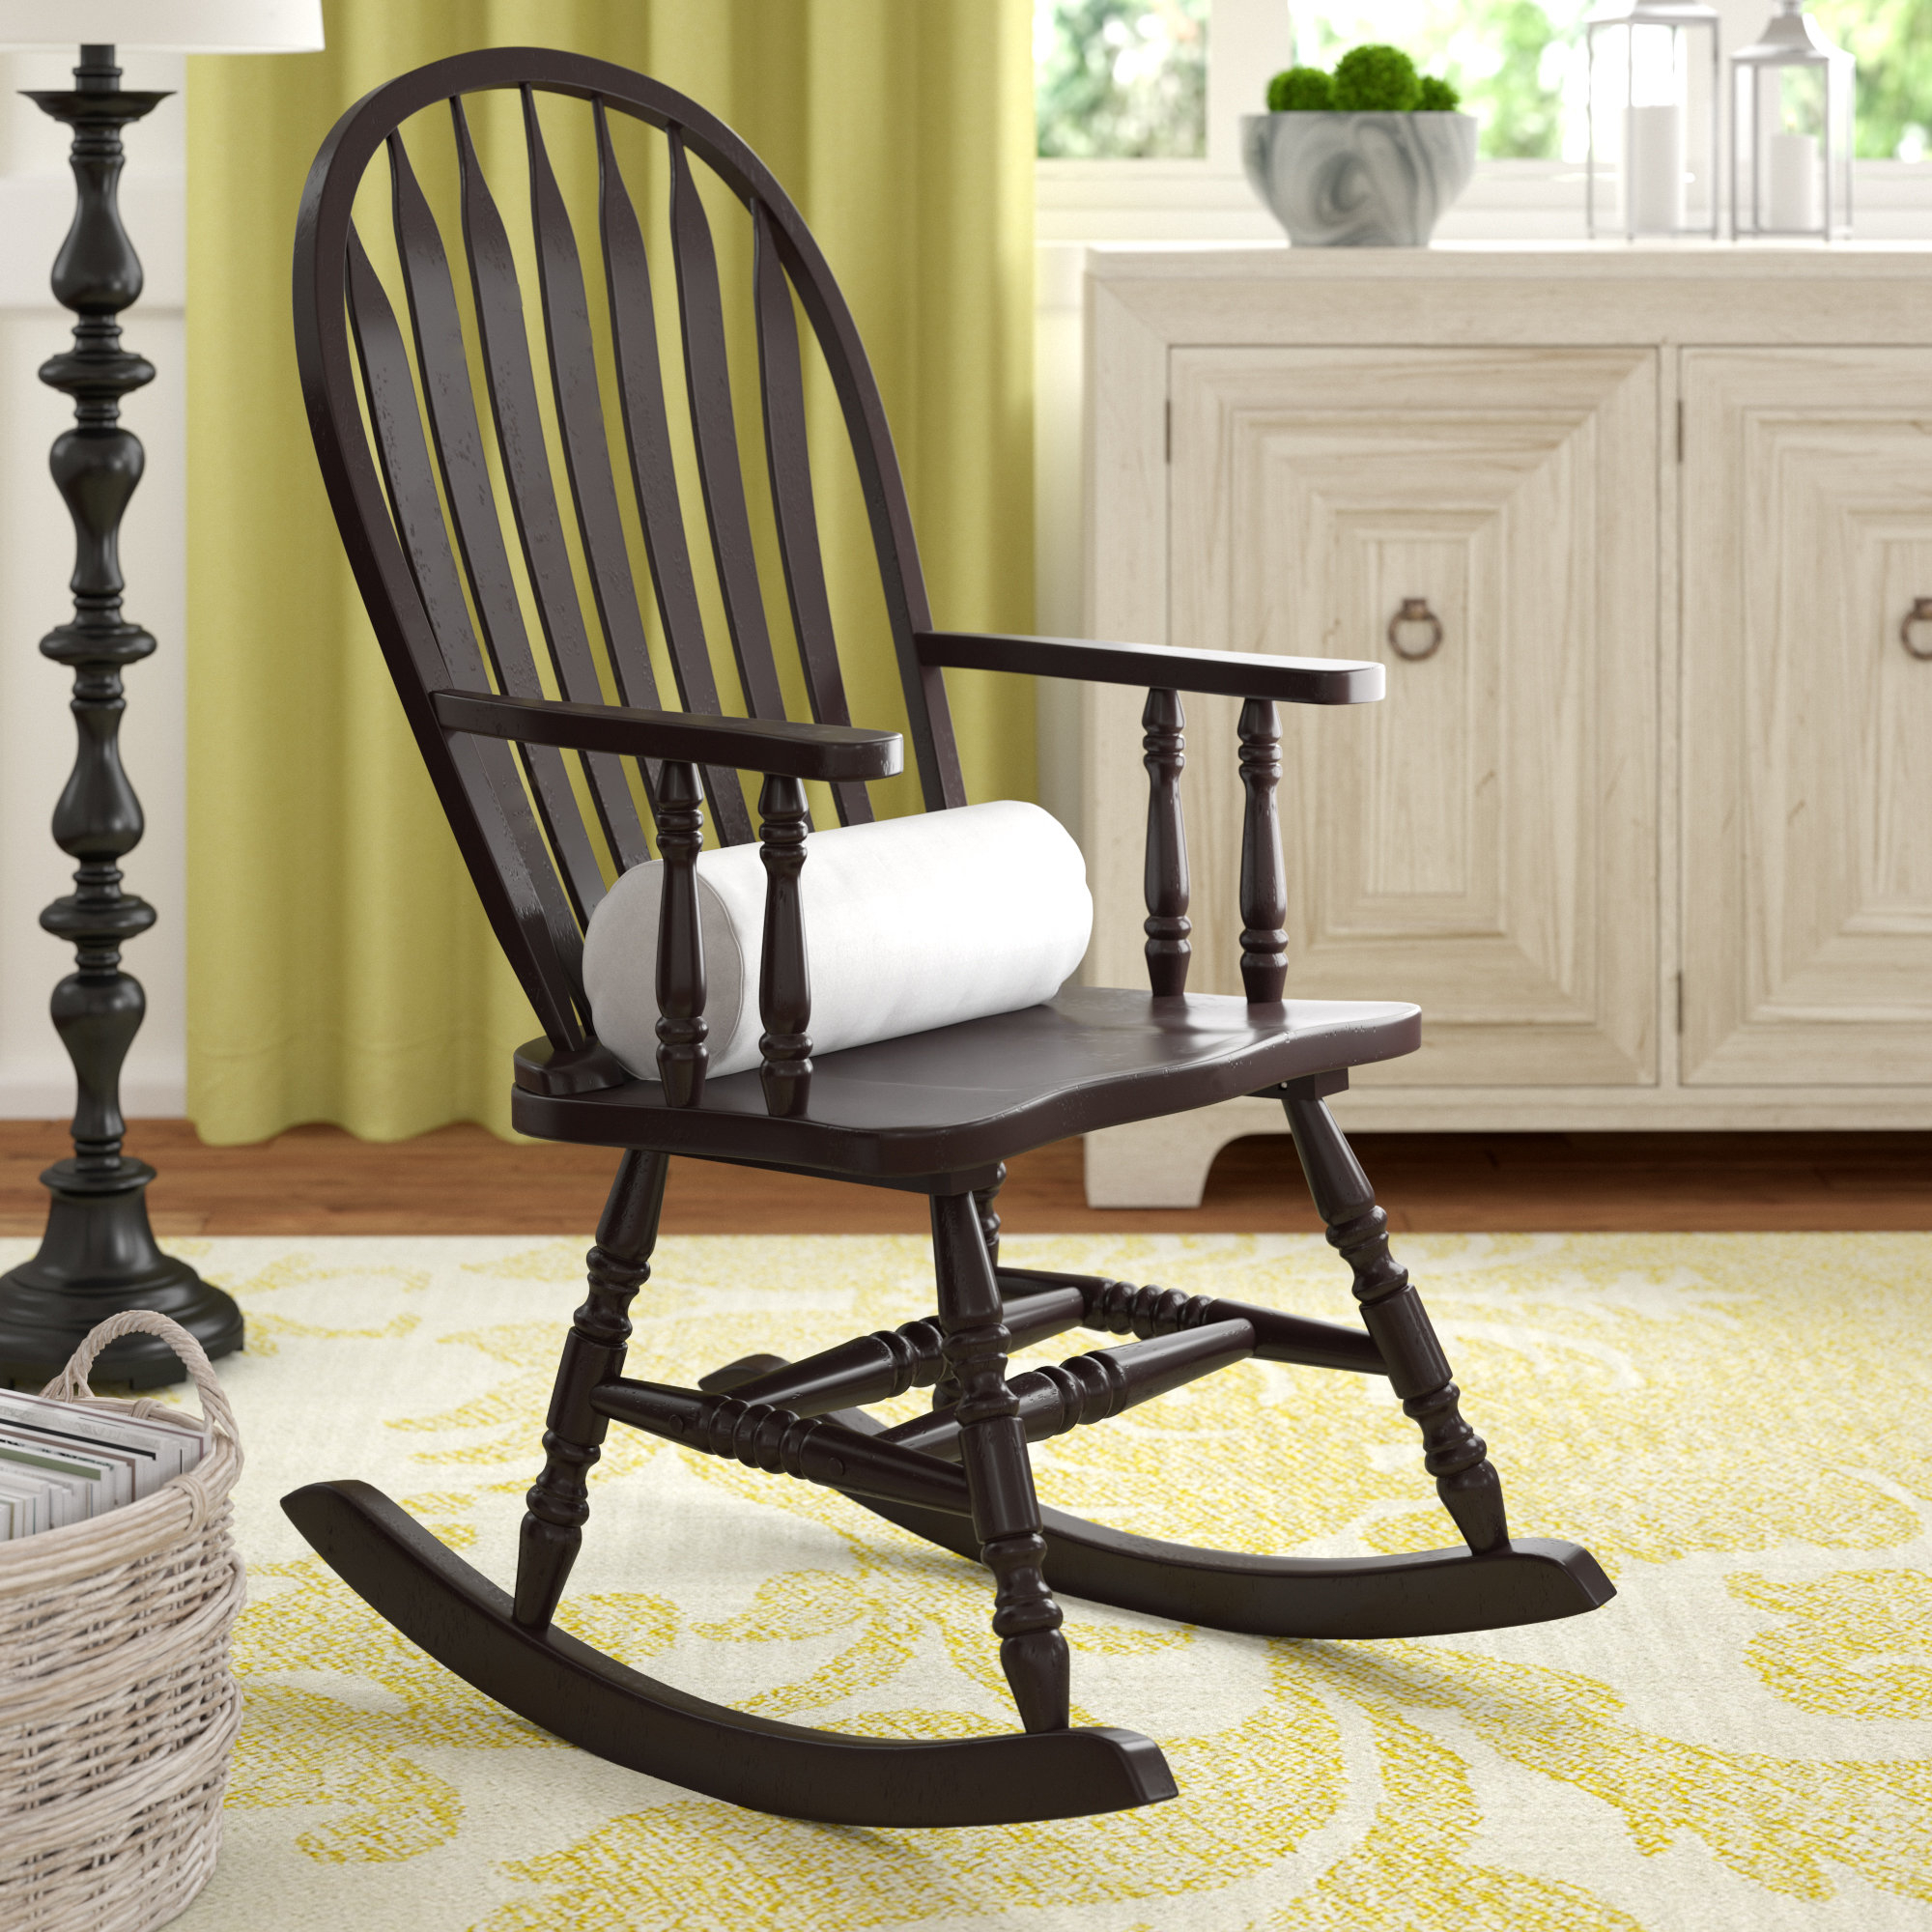 Yarbro Rocking Chair With Arms With Regard To Cappuccino Curved Rocking Chairs (#20 of 20)